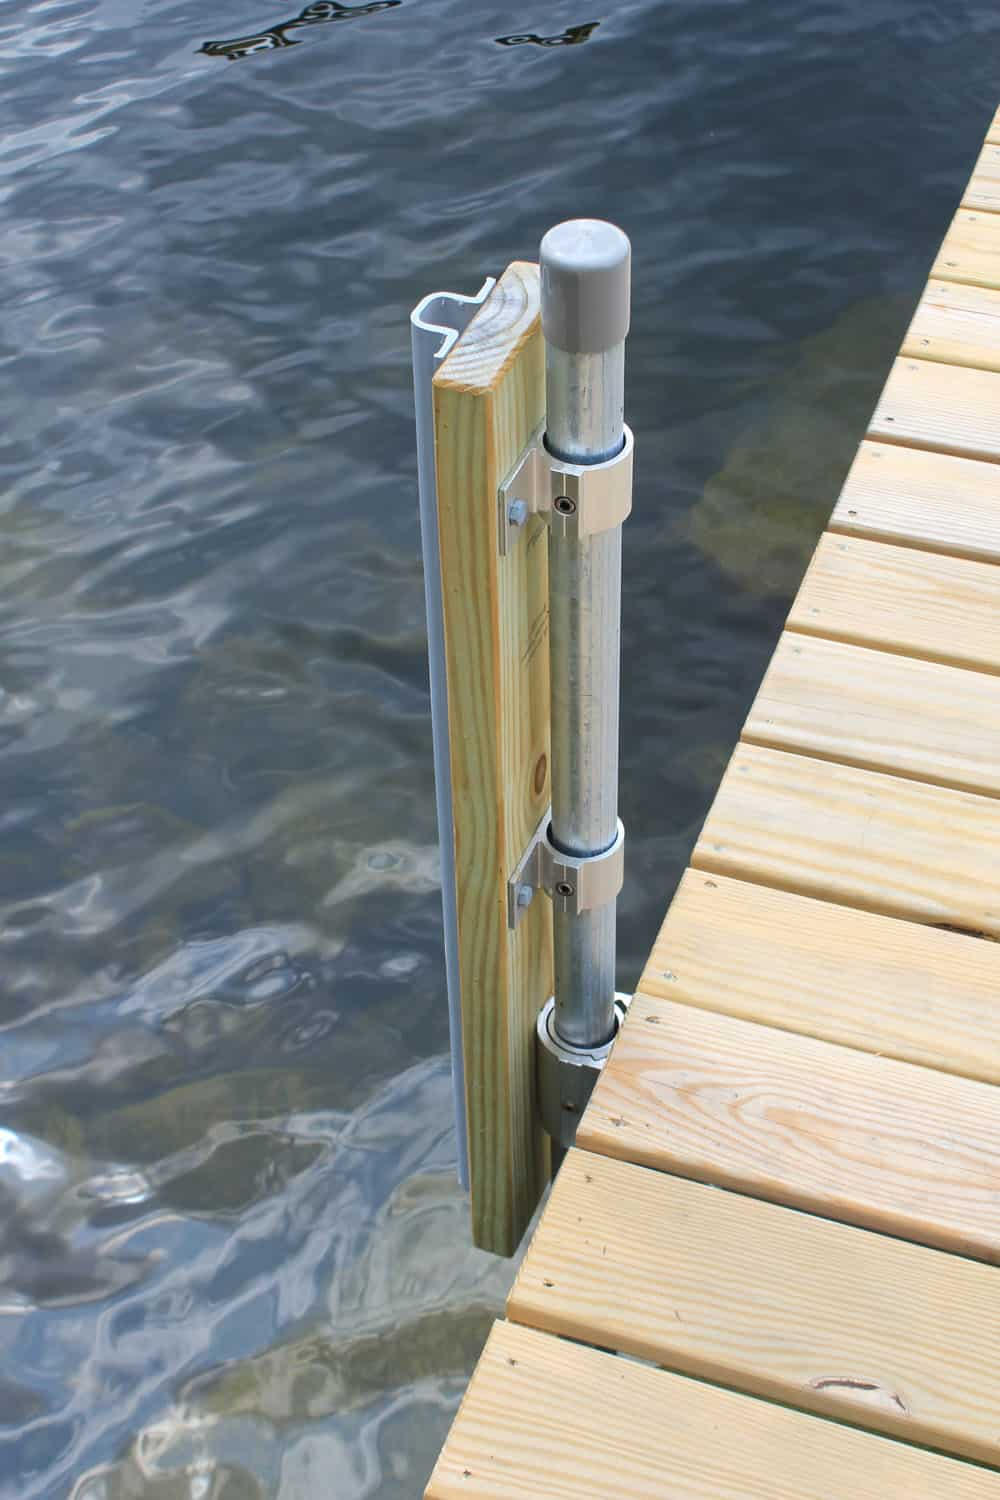 Accessories: Stationary Wood Docks - Boat Docks